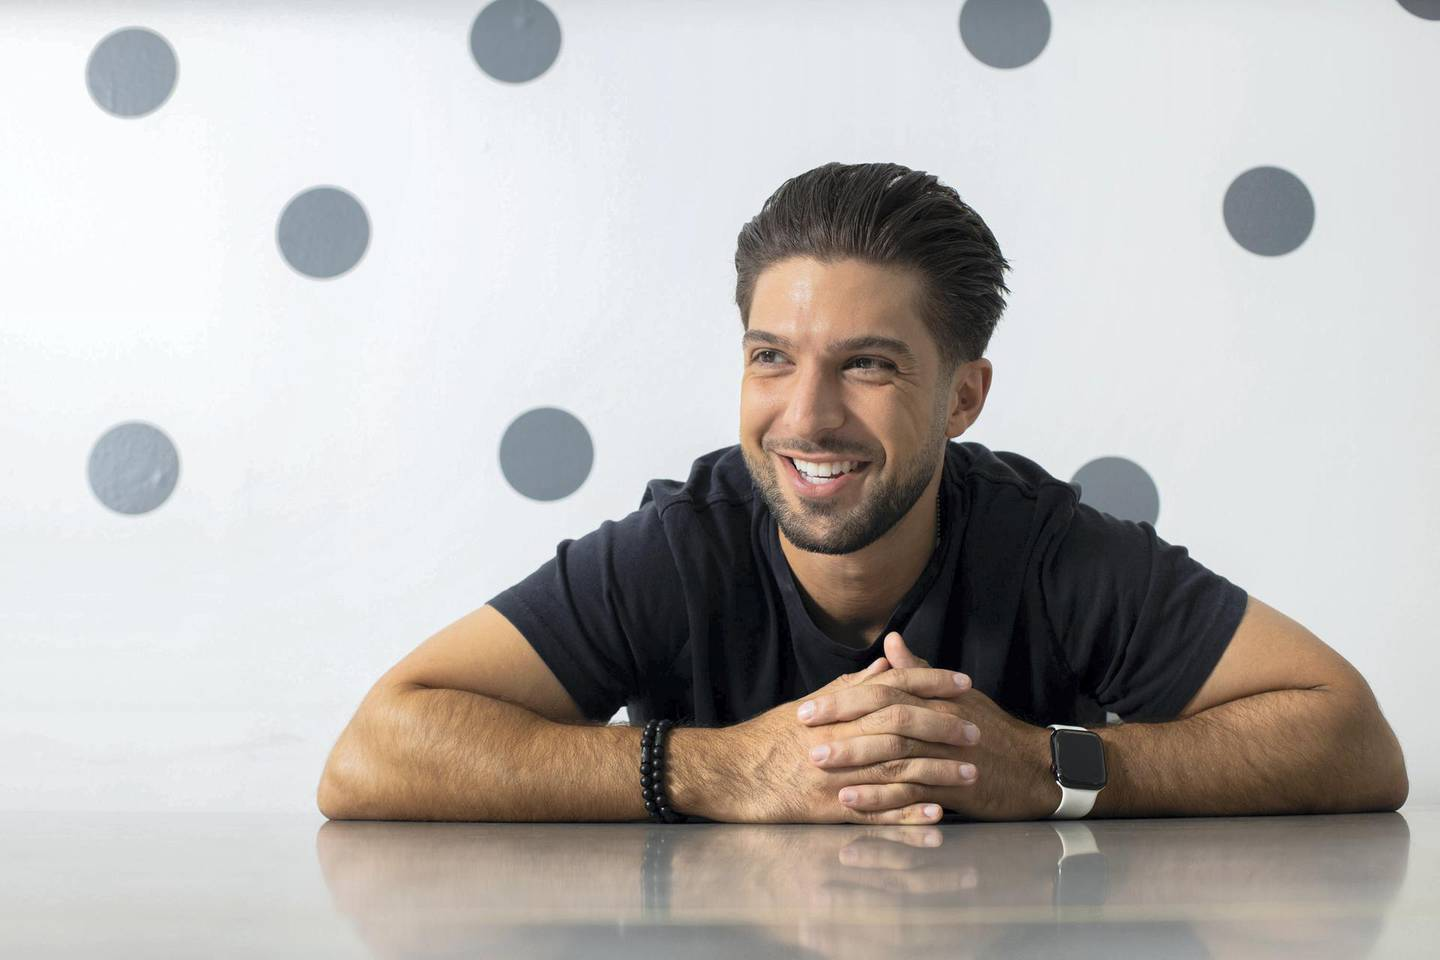 CyrusAlavi is the co-founder of NuWater, a sustainable water business aimed atreducing plastic use. He is part of a feature on Covid-era start-ups. Grace Guino for The National